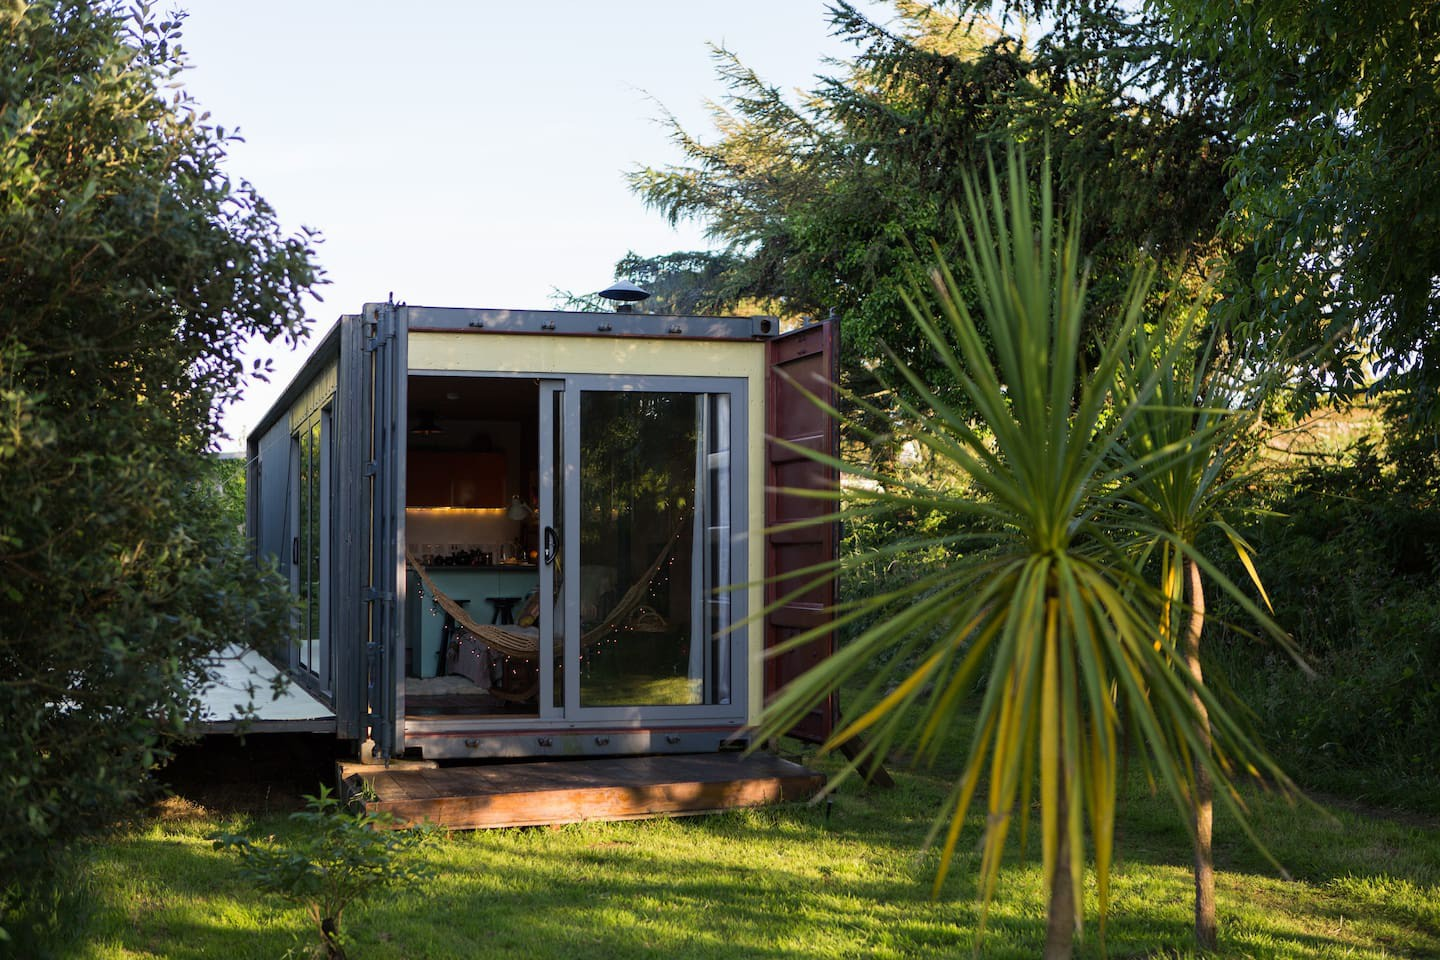 shakas-house-small-cabin-in-field-with-palm-trees-in-st-ives-halestown